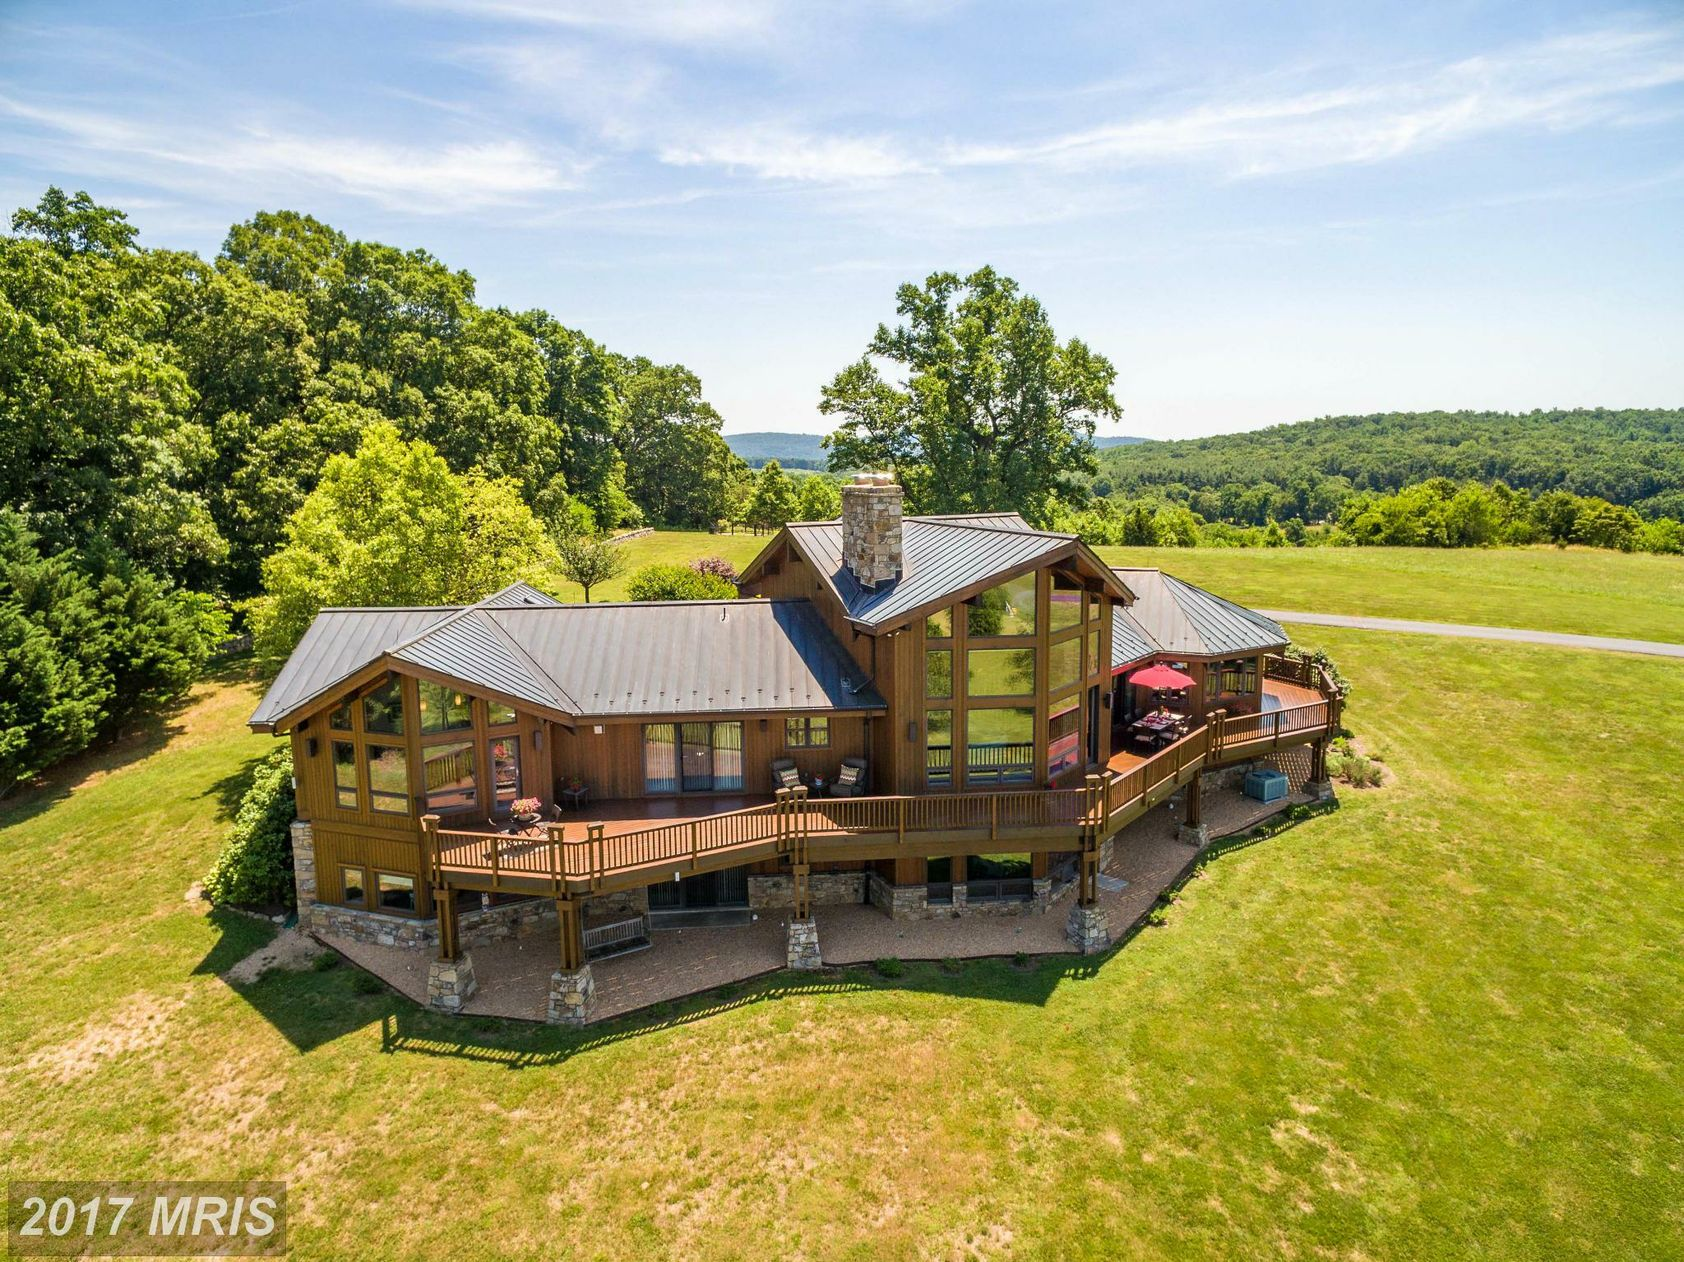 I am a city girl through and through, but I would give it all up in a heartbeat to live in this beaut! Mt. Jett Farm is a 7,000-square-foot custom home sited on 118 acres in Marshall, VA at the foothills of the Blue Ridge Mountains. Everywhere you turn, you're surrounded by custom woodwork and expansive views of the rolling hills of Dixon Valley. Plus, you're only a stones throw away from Red Truck Bakery and Field & Main! It's luxury country living at its finest and yet it's still only an hour drive from the city. Listed by Barbara Patton and Lynn Hoover of McEnearney Associates, this four-bedroom/five-bath farm retreat is almost a steal at $2,650,000. Enjoy our gallery and visit mcenearney.com for more info on the lot! (Image: Courtesy McEnearney Associates)